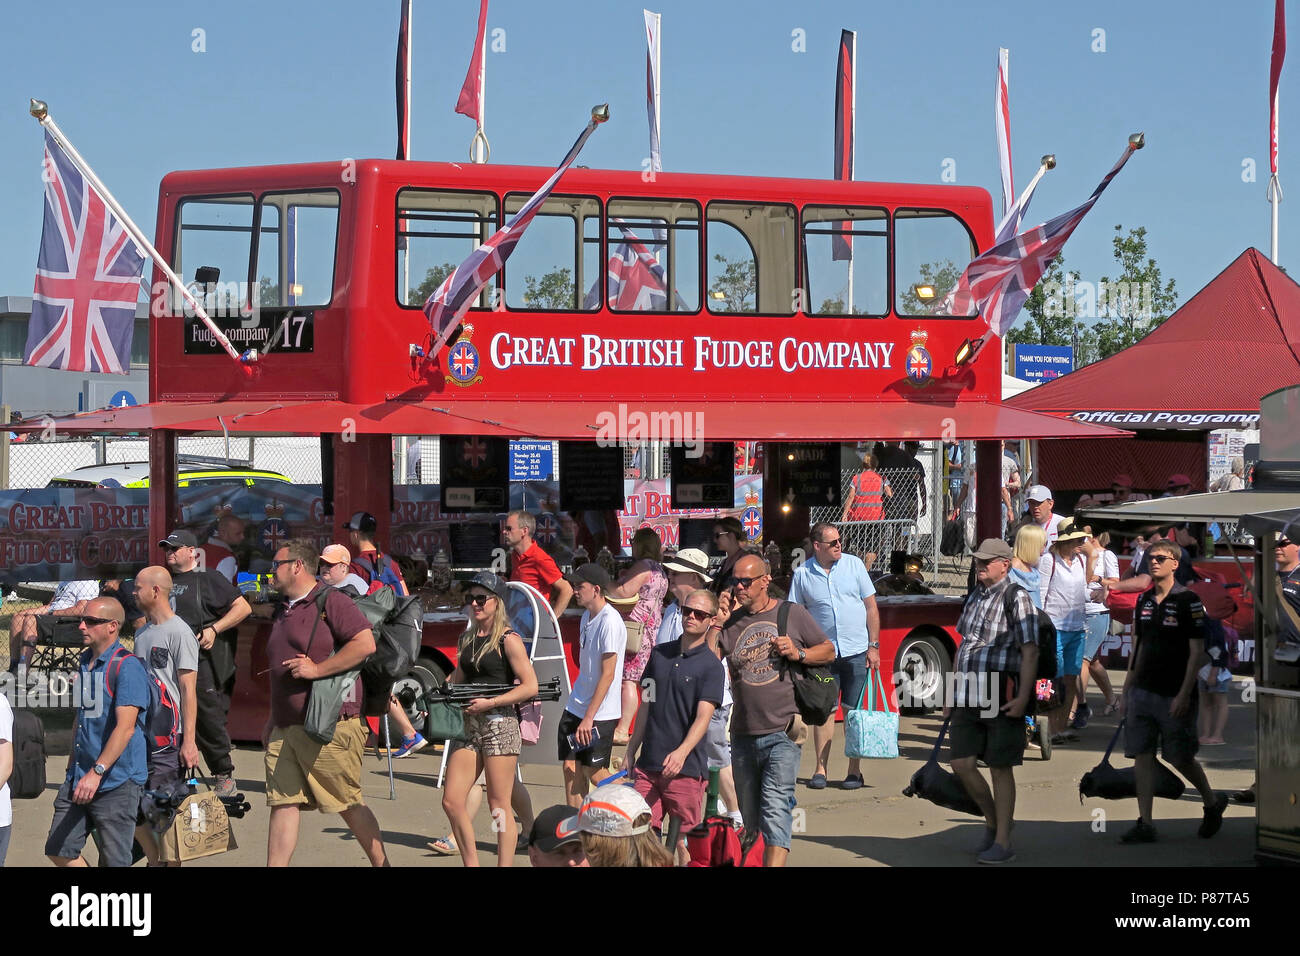 @Hotpixuk,GoTonySmith,Brexit,fudged brexit,sweet shop,Great Britain,Great Britain Brexit,UK,United Kingdom,exit from Europe,Brexit from Europe,A50,Article 50,Silverstone,England,double decker,bus,fudged,symbol,icon,iconic,EU,Brexit fudge,Chequers,politics,Tory,Brexiters,Brexit transitional period,transitional period,Theresa May,negotiation,negotiations,Cabinet Brexiteers,leaving,leave,post-Brexit,trade,relationship,max-fac,hard border